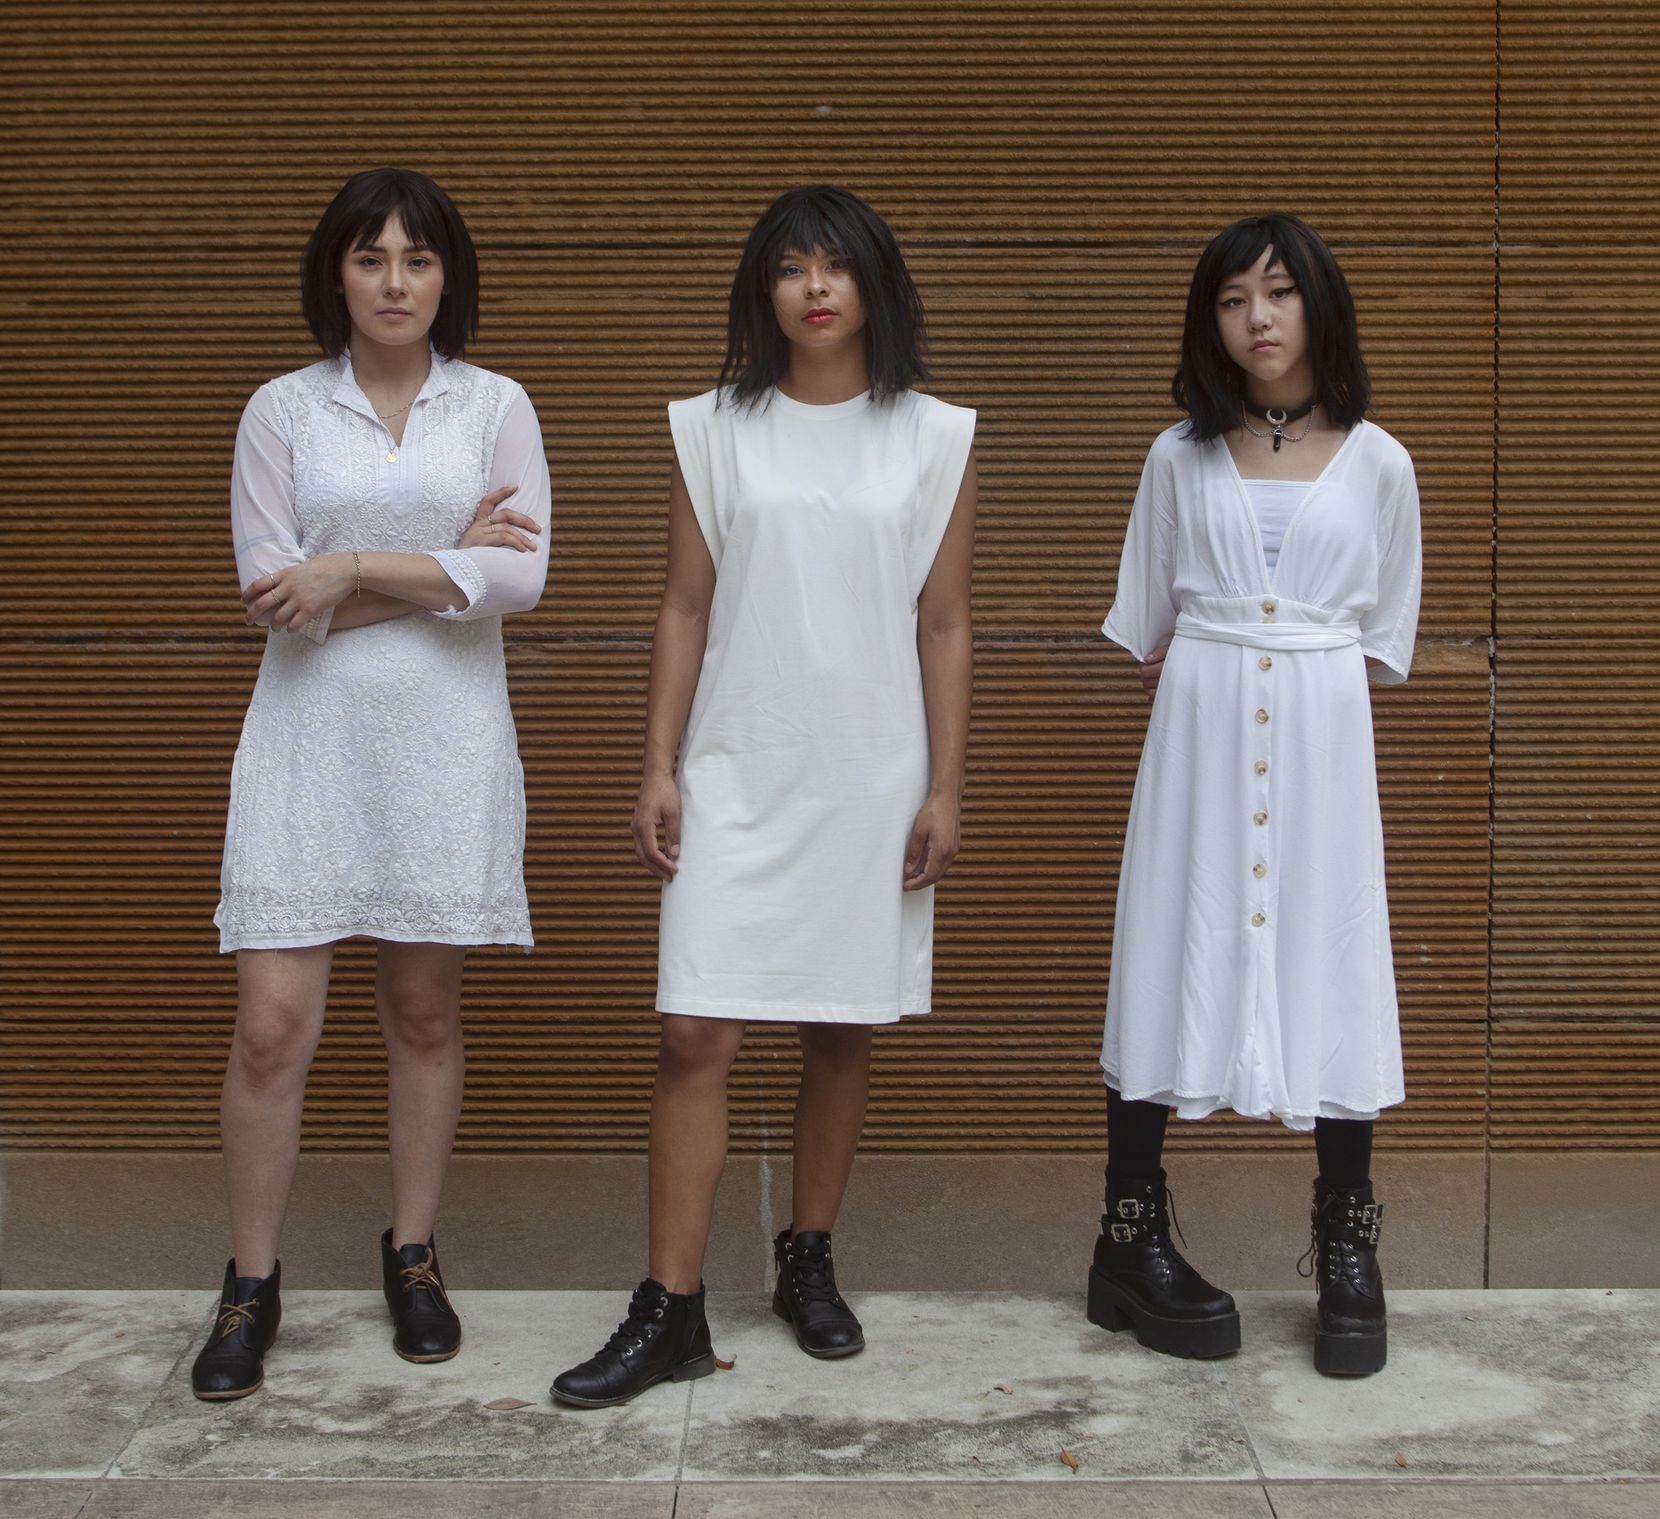 """From left: Lucila Rojas, Jessi Jones and Ava Dao Whatley portray the main character Ozlem at different ages in Artstillery's performance of """"Dirty Turk aka Dirty Immigrant."""""""